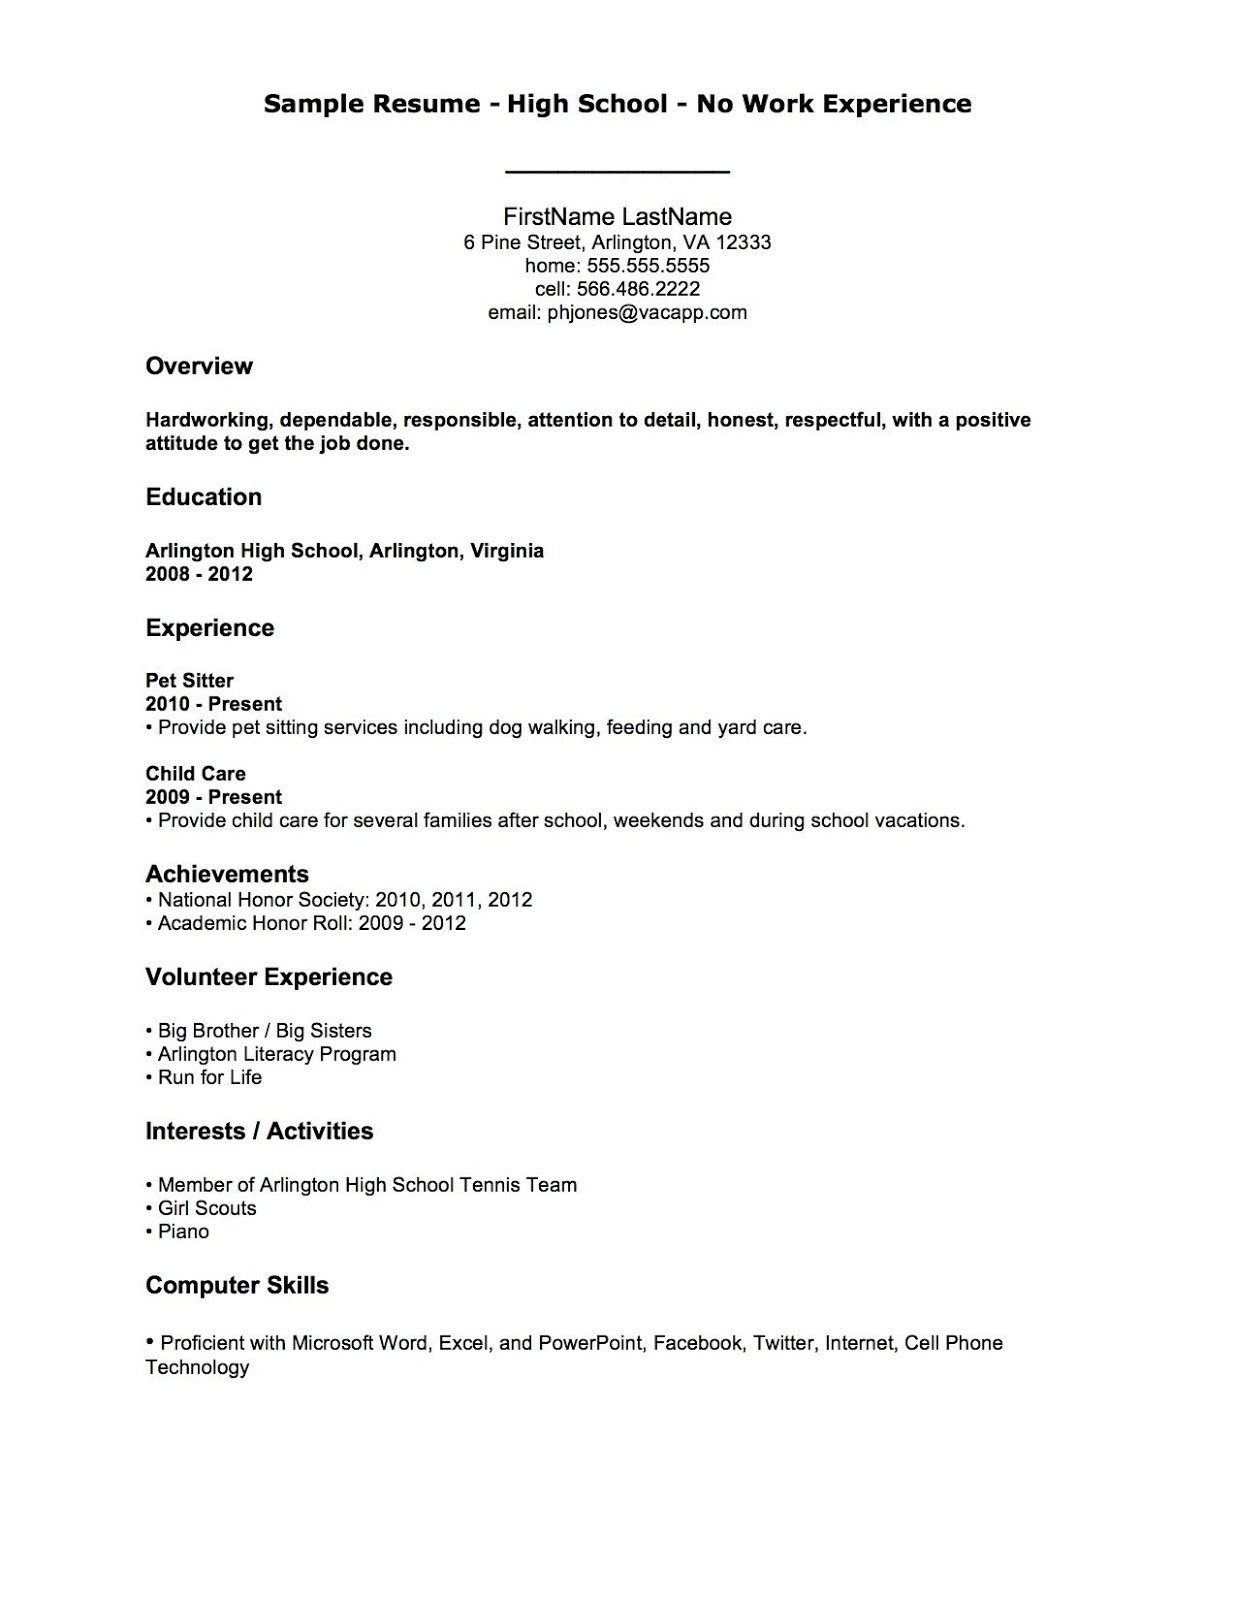 Resume Sample Sample Resume Job Application. Newsound.co